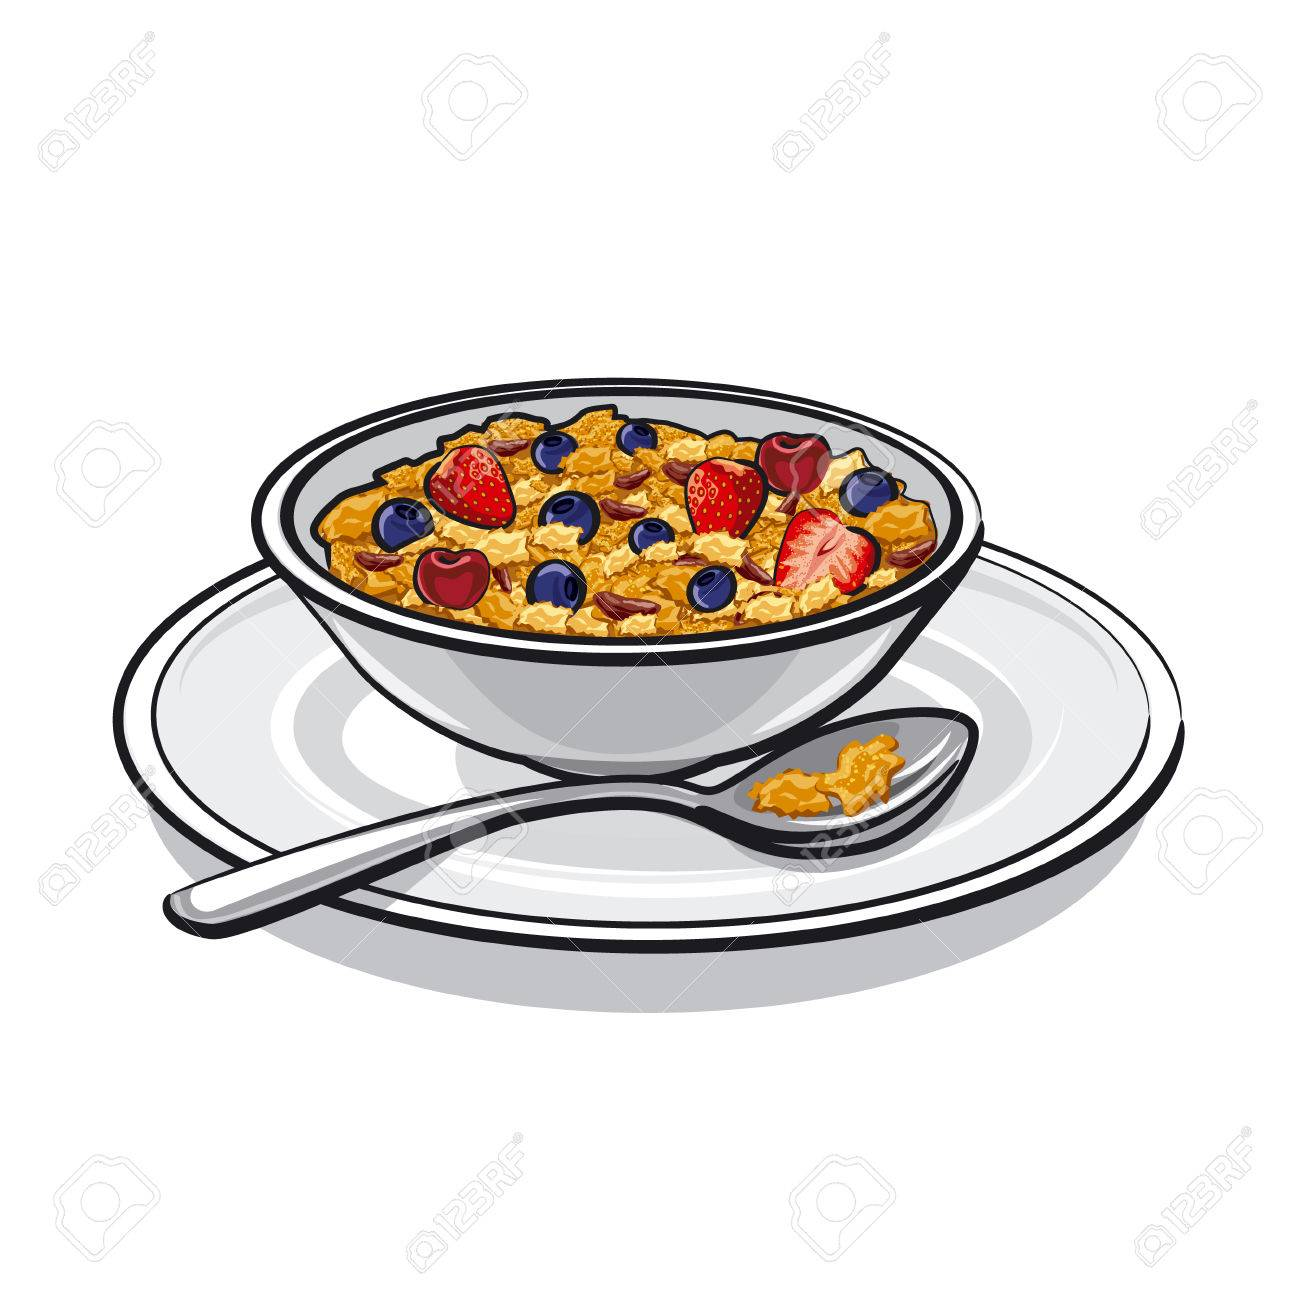 Breakfast Cereal Cliparts